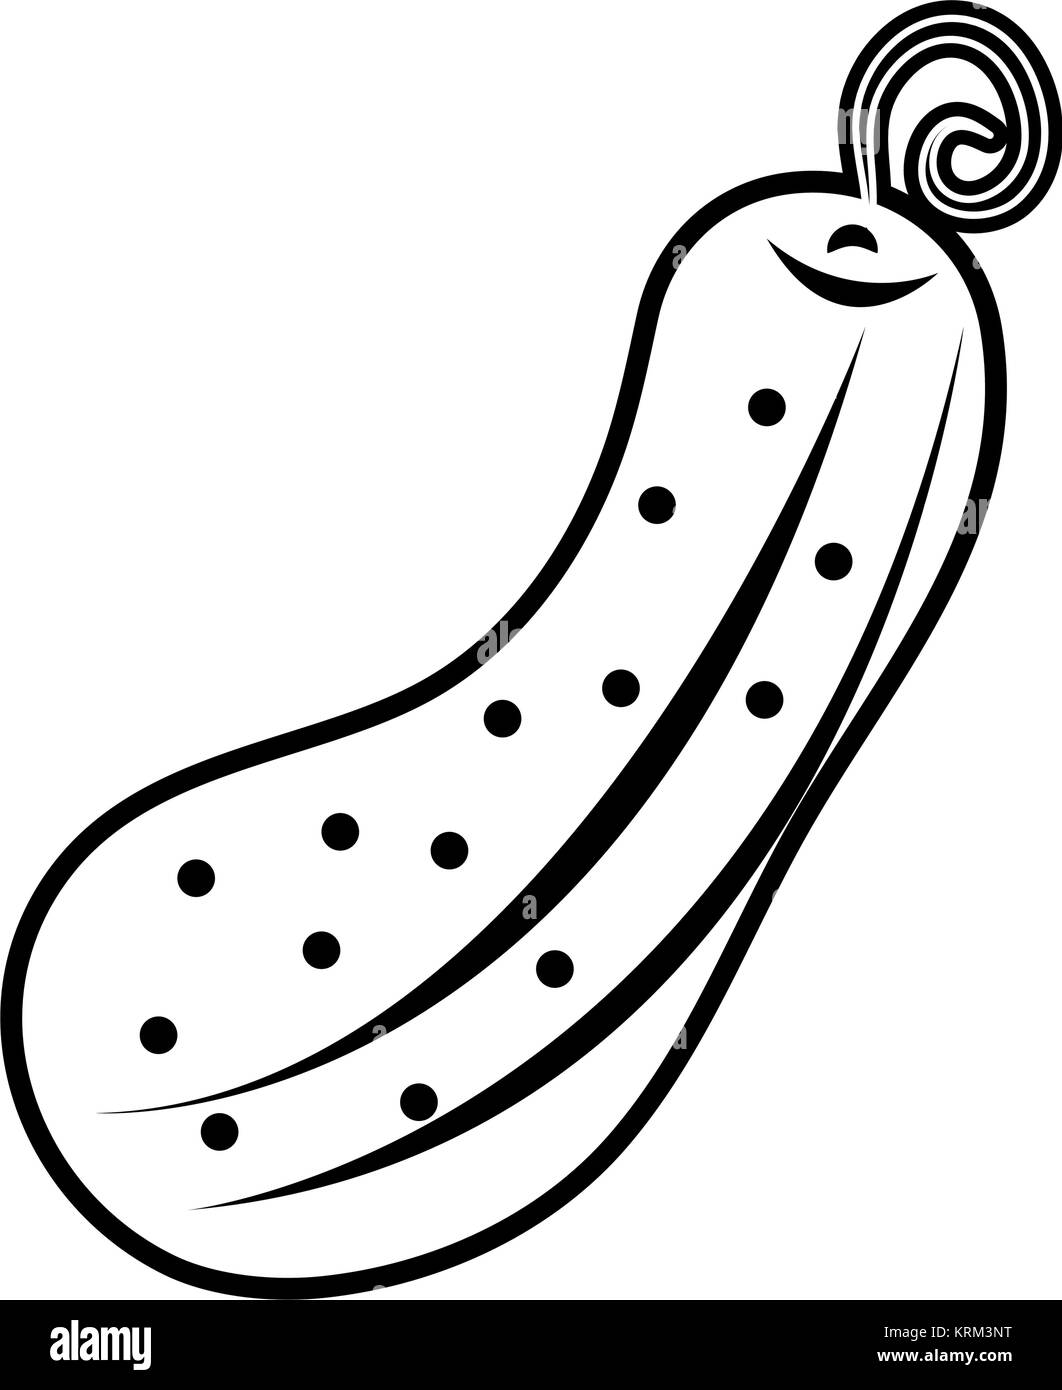 Pickle vegetable isolated - Stock Vector